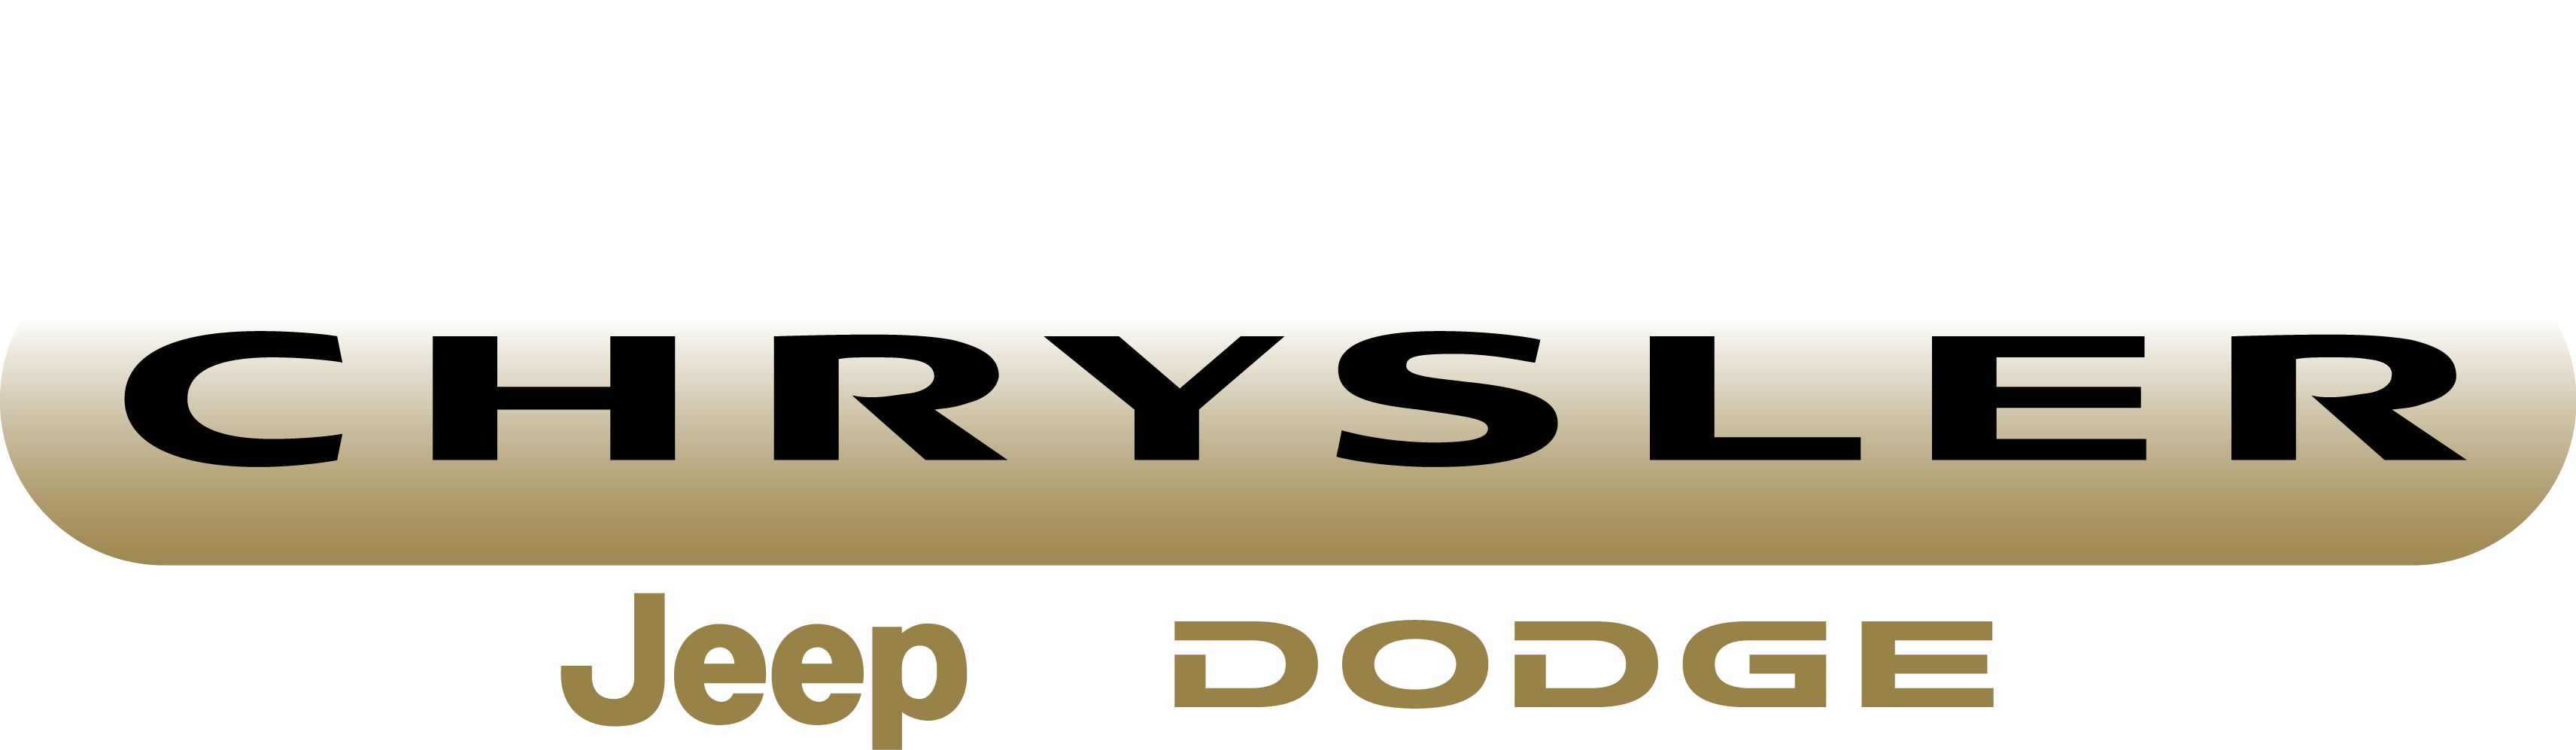 Leamington Chrysler logo